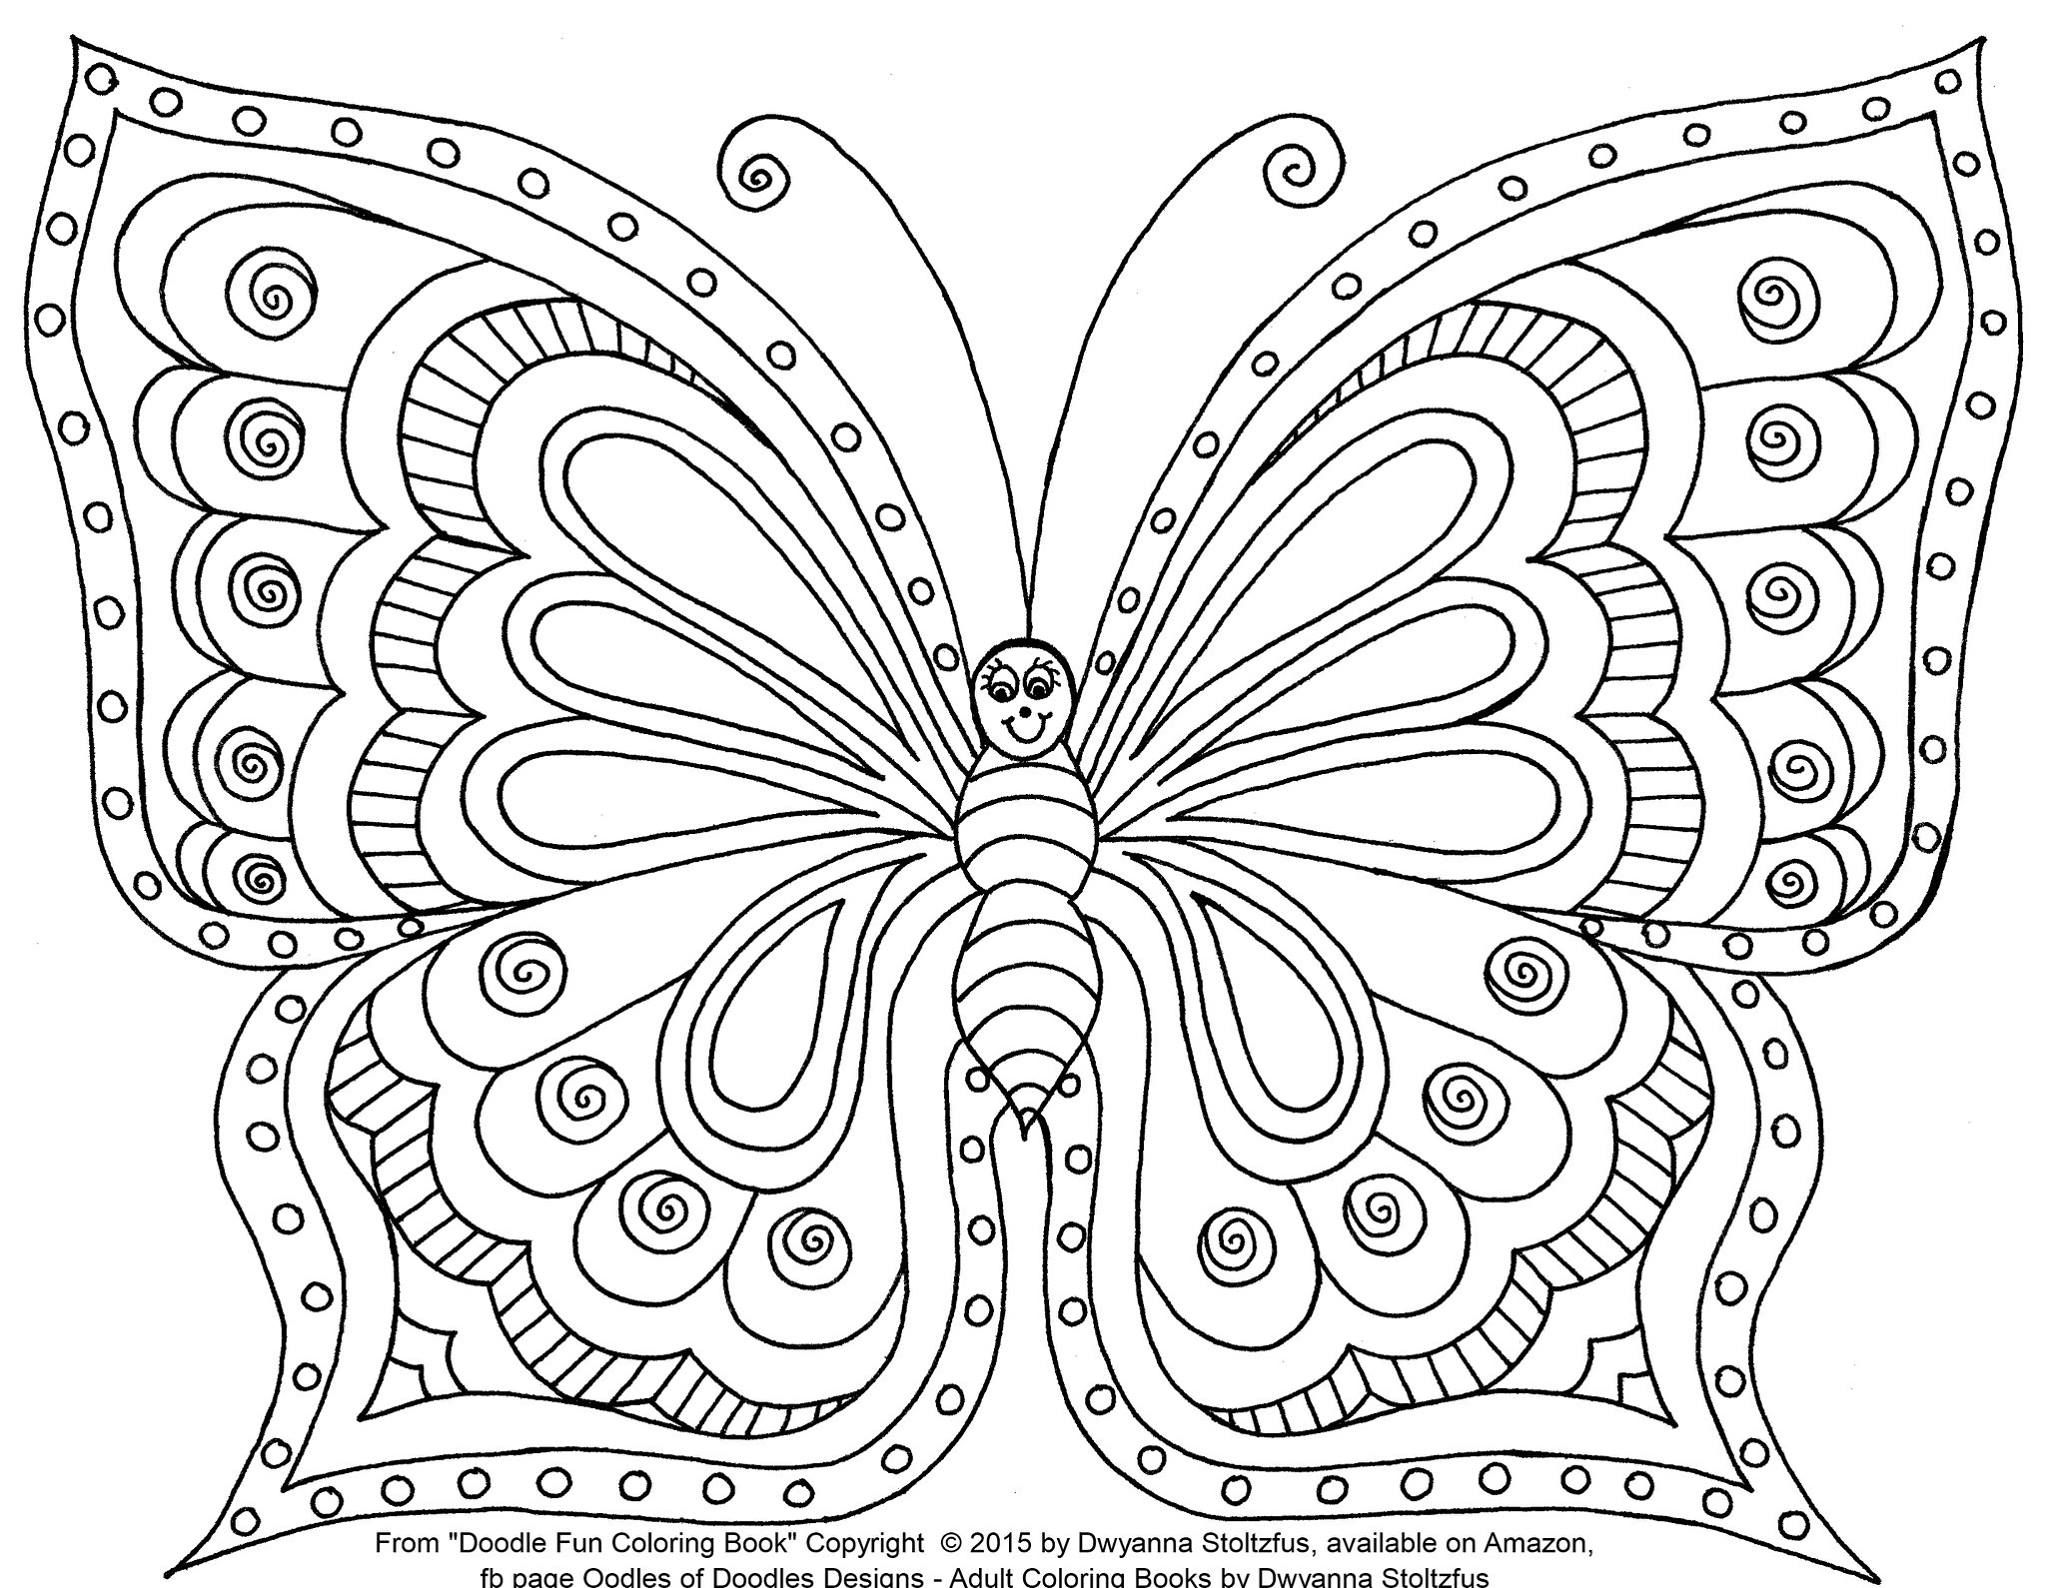 Artist Dwyanna Stolzfus Butterfly Coloring Page Coloring Pages